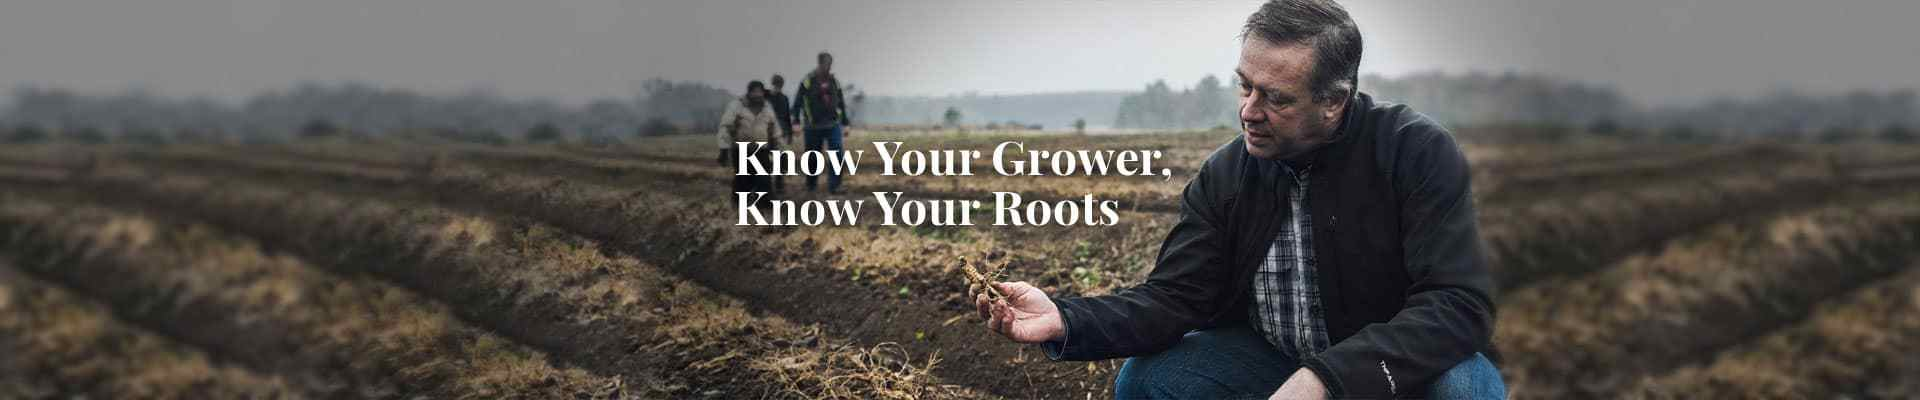 Know Your Grower, Know Your Roots.